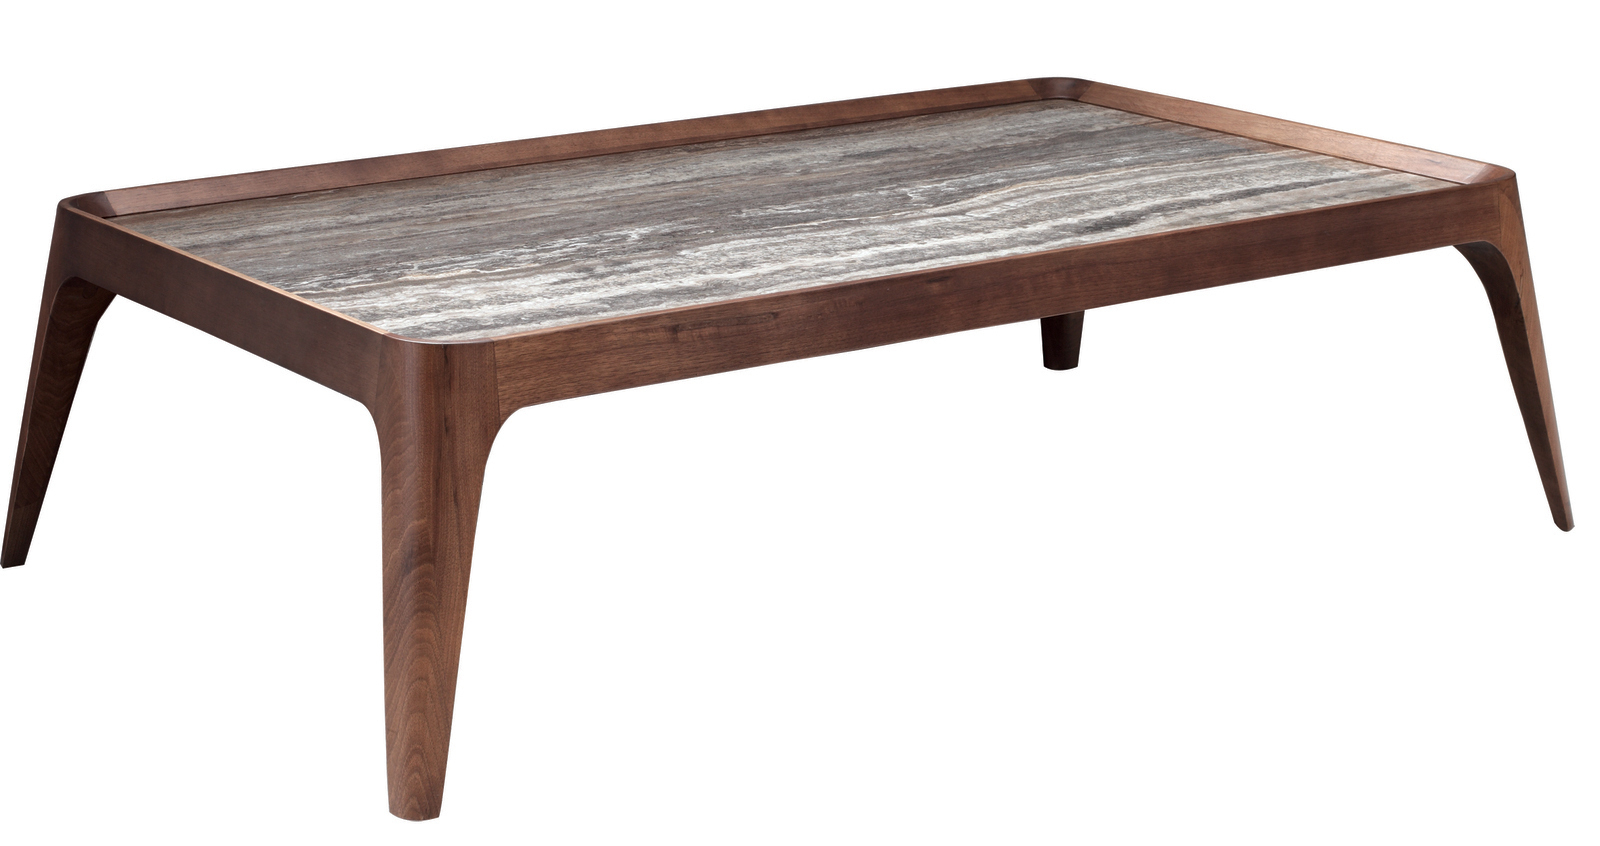 Recent Brisbane Oval Coffee Tables Within Coffee Table Wood Designer Marble Contemporary Furniture Brisbane (View 17 of 20)